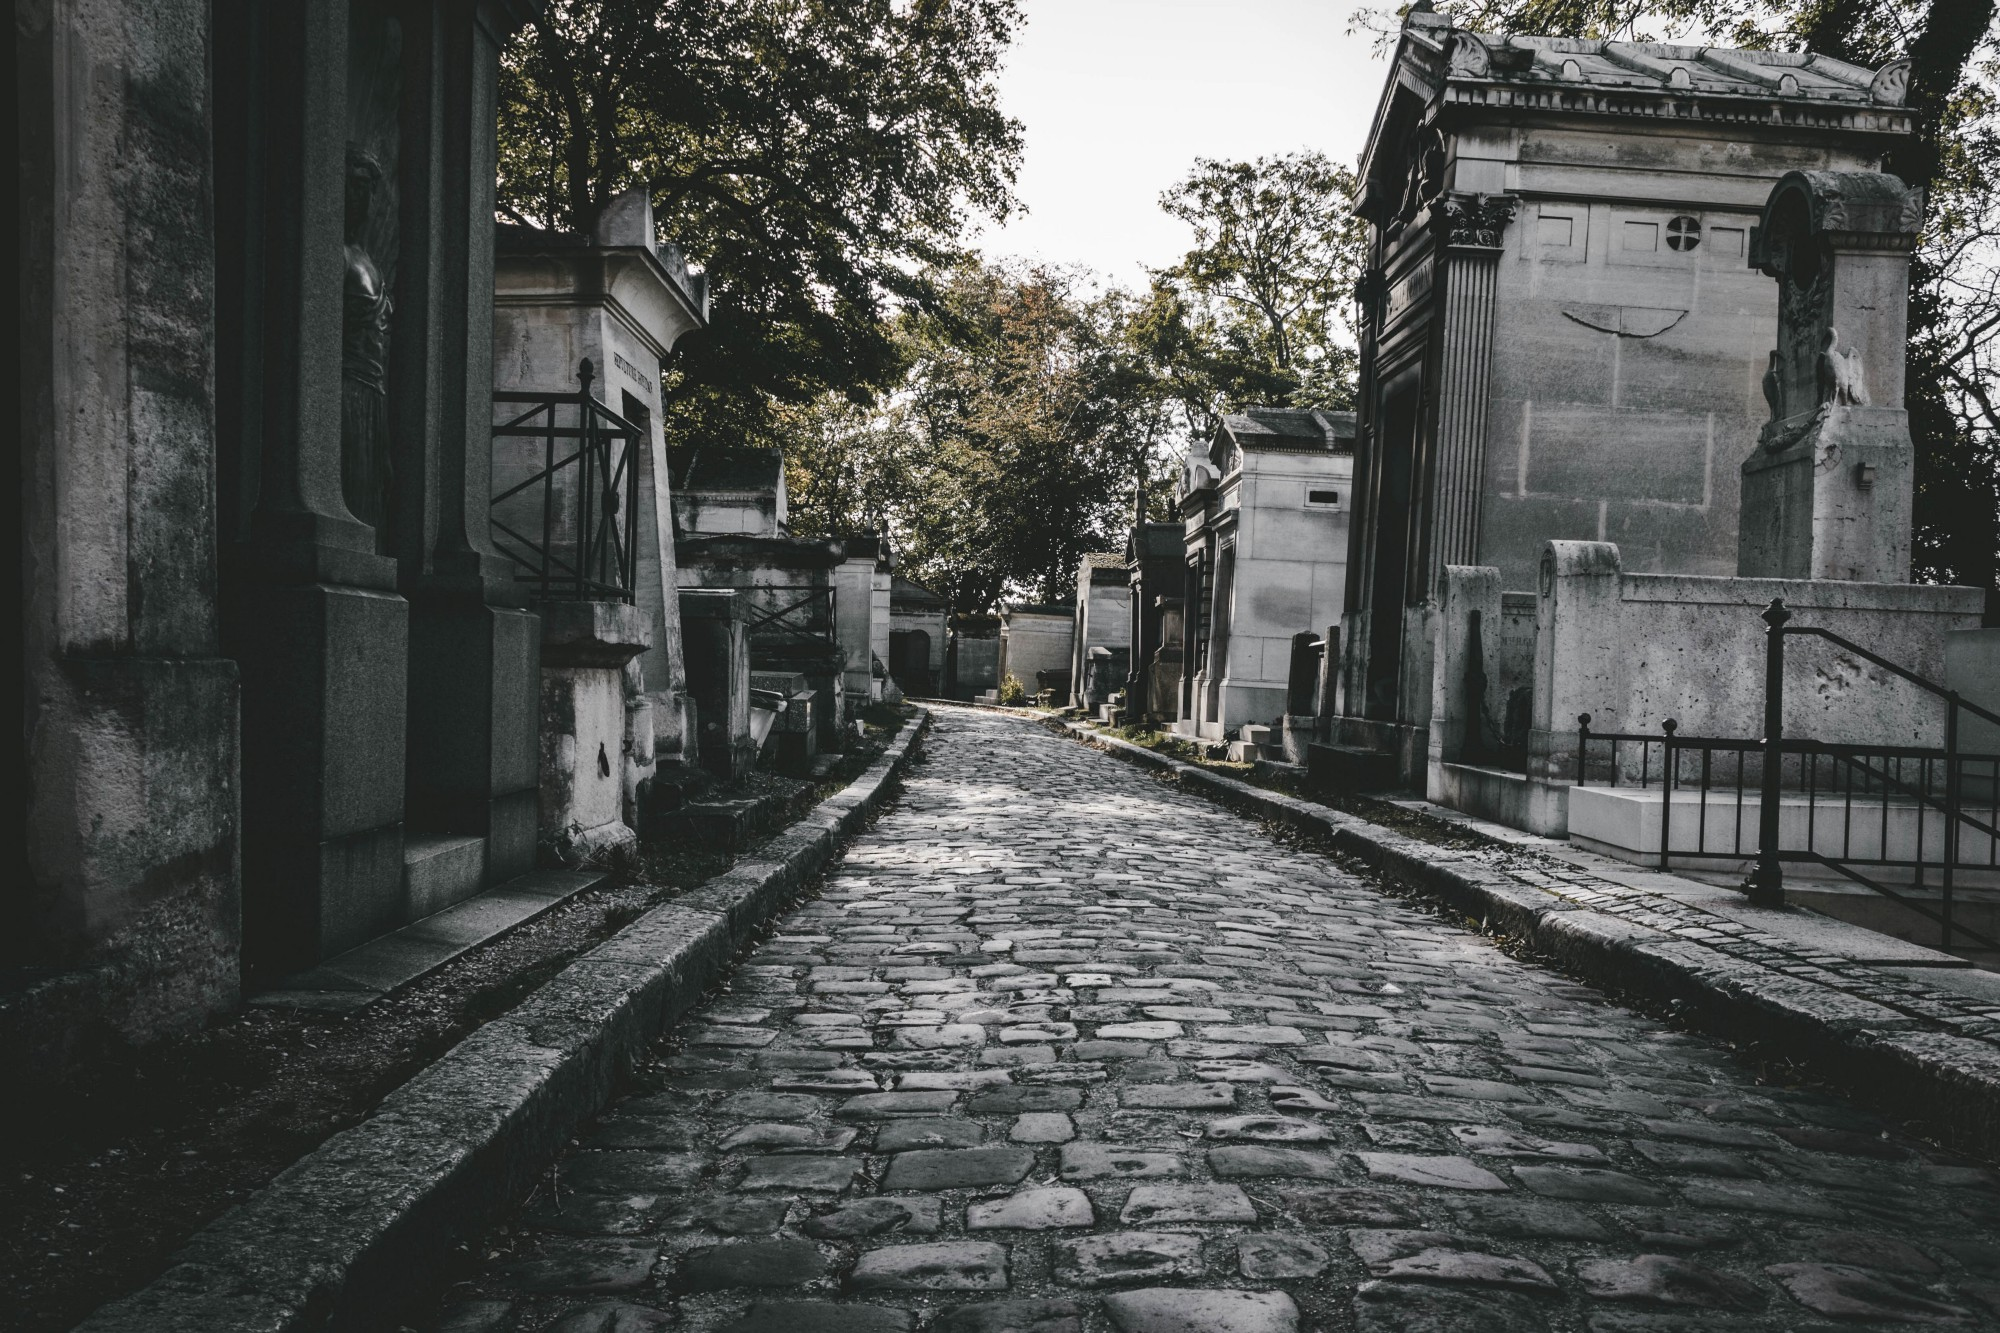 Cobblestone street through a cemetery